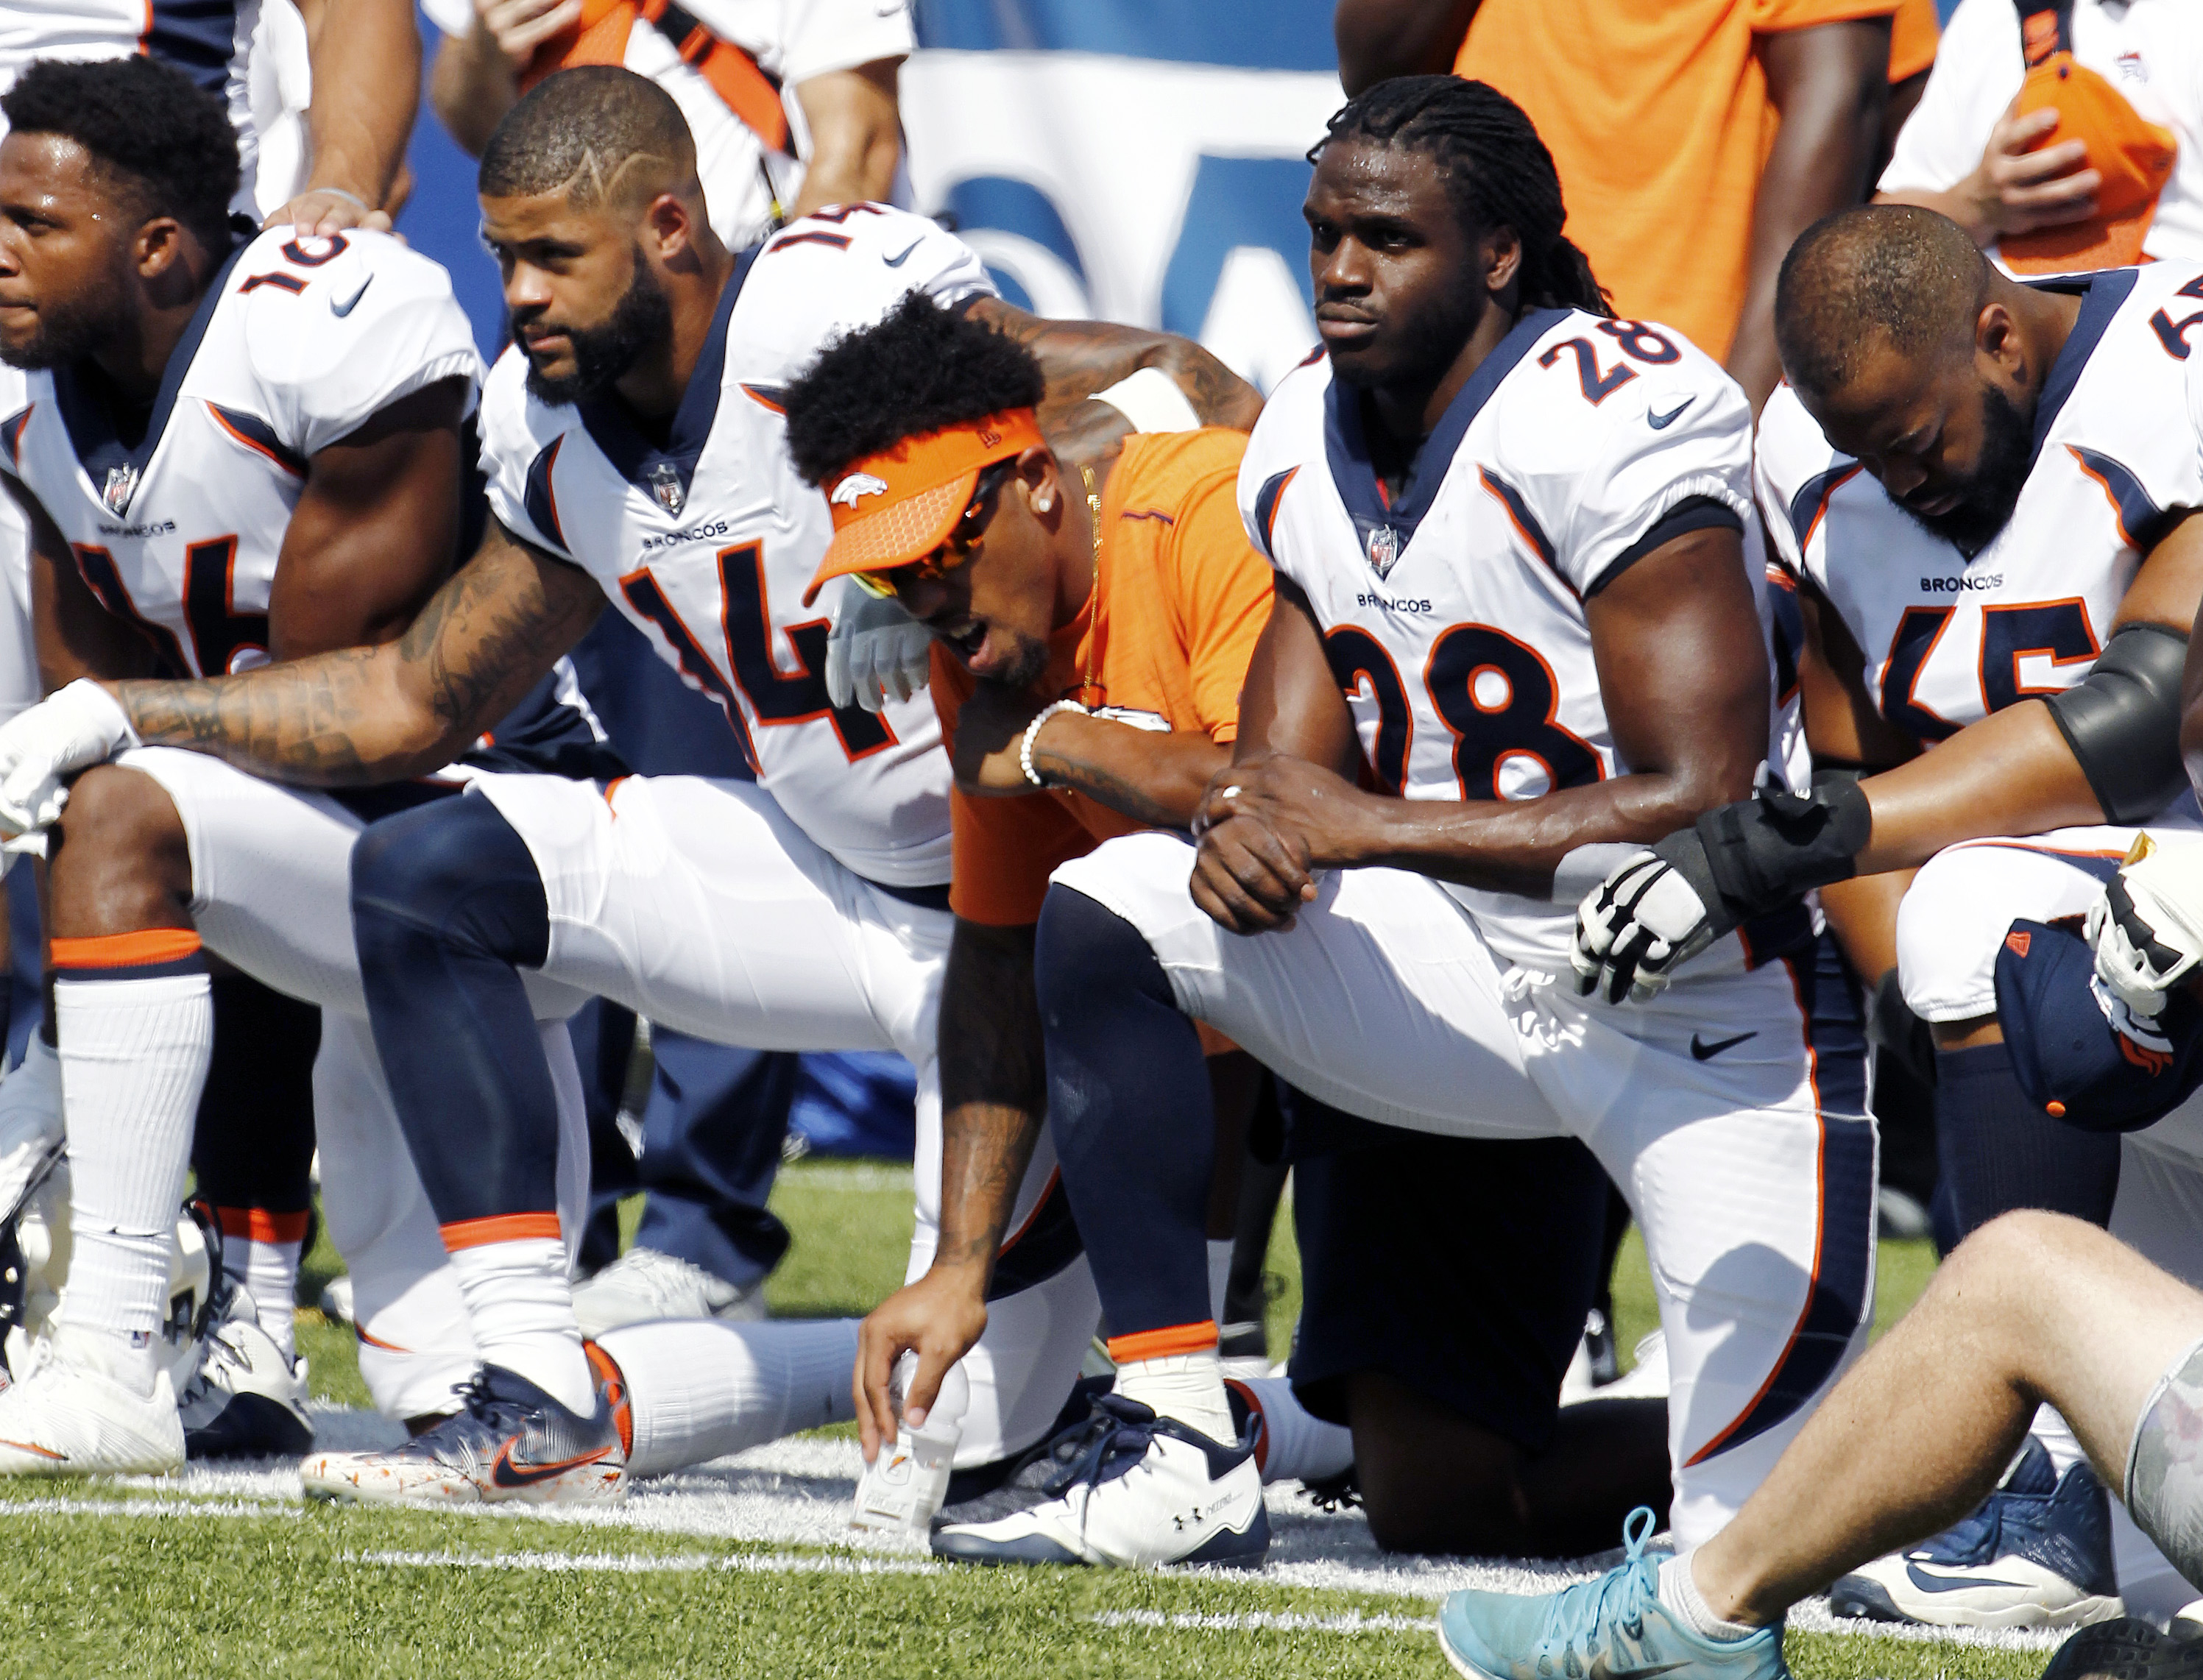 <p>Denver Broncos players kneel during the national anthem prior to their game against the Buffalo Bills, Sunday, Sept. 24, 2017, in Orchard Park, N.Y.</p>